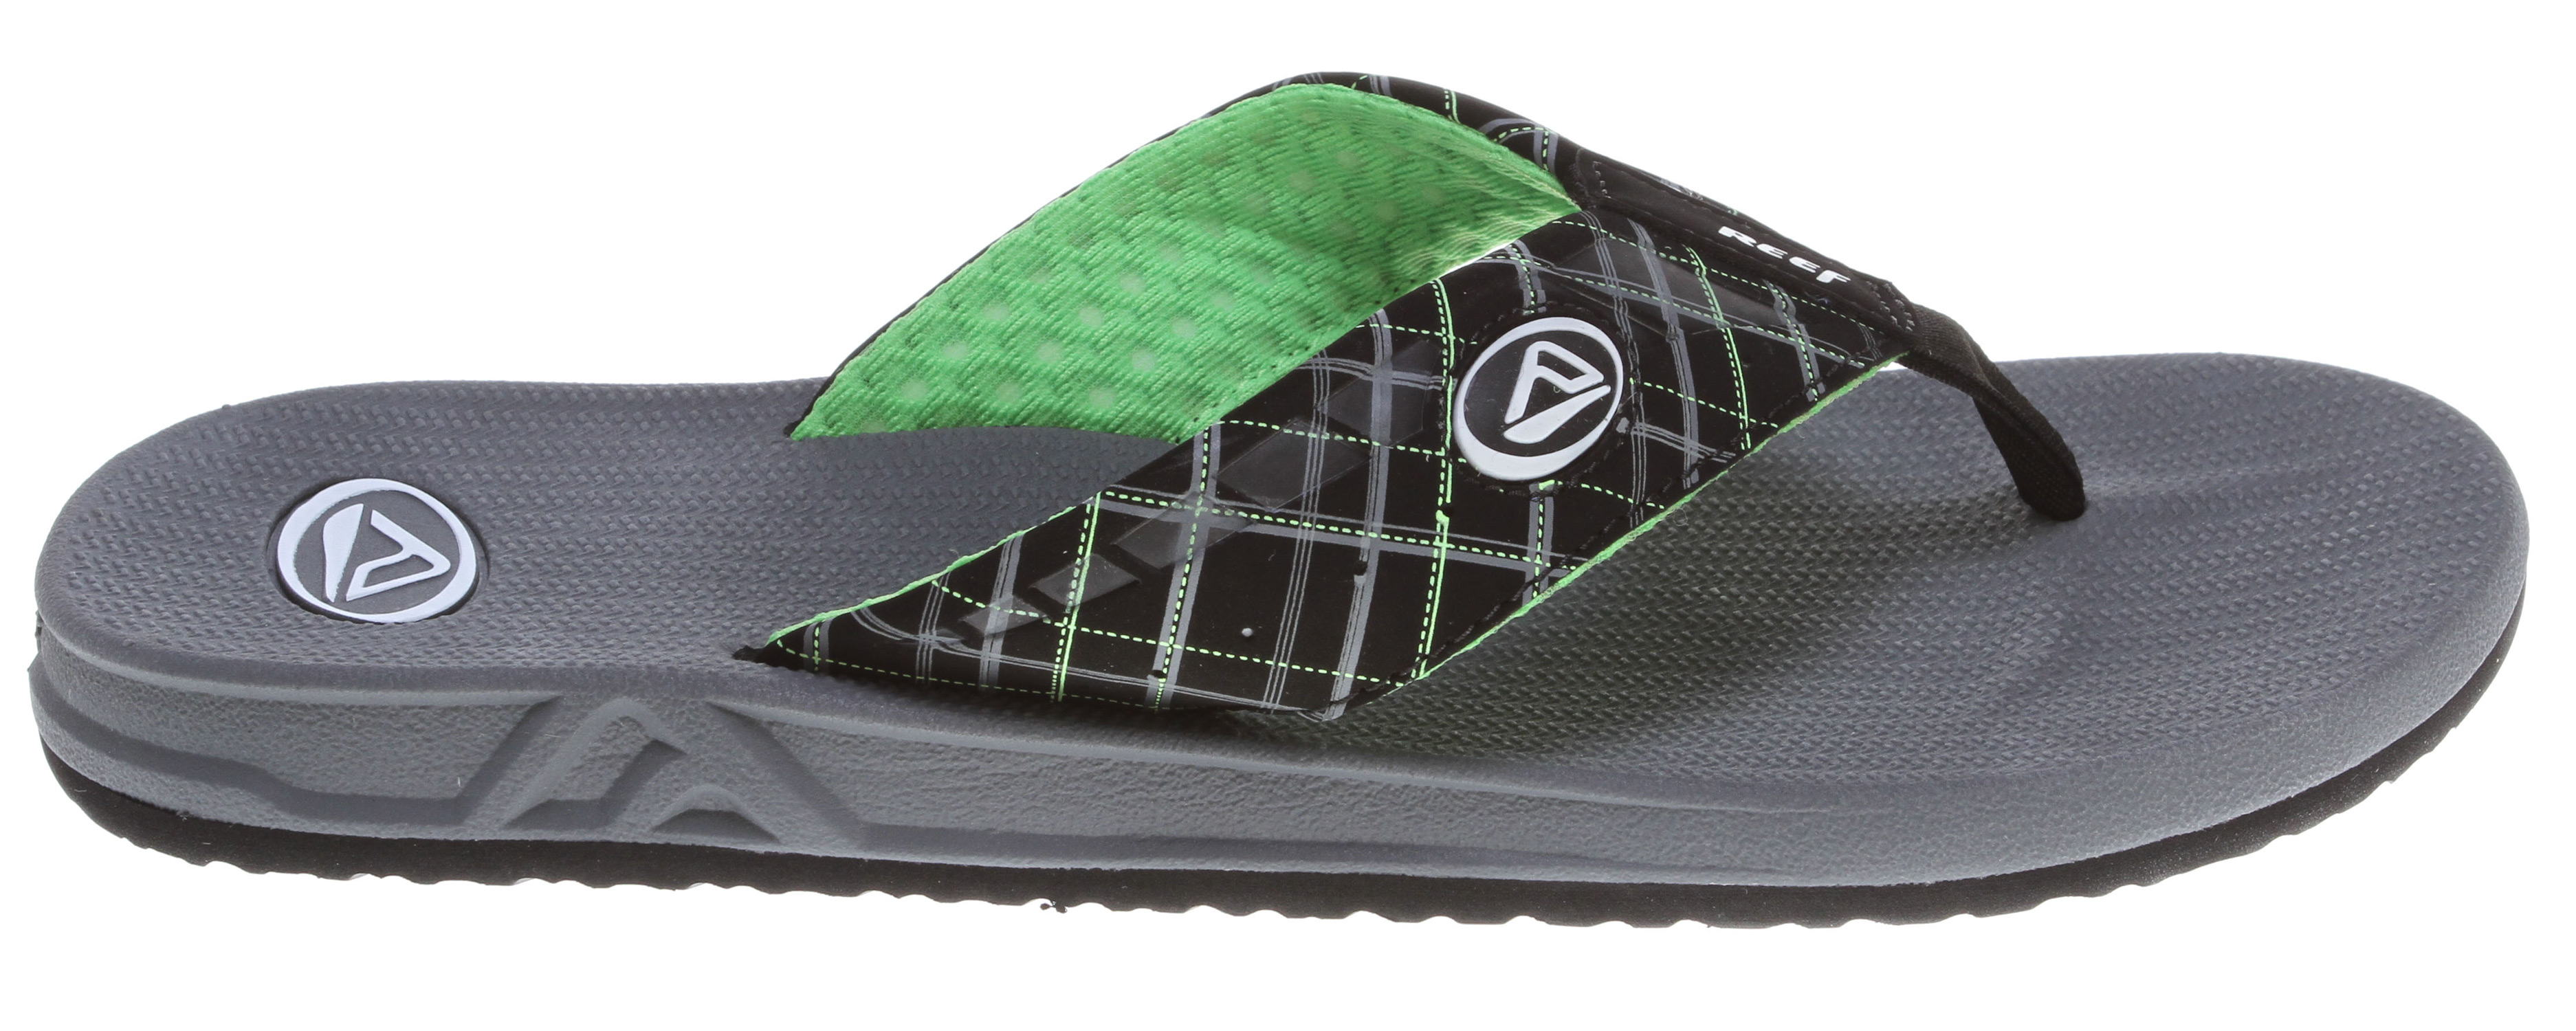 Surf Key Features of the Reef Phantoms Prints Sandals: Guy's Performance Sandal Soft, comfortable, water friendly synthetic nubuck upper with air mesh lining Printed upper design details Contoured compression molded EVA footbed with anatomical arch support Durable and grippy molded high density EVA outsole - $20.95